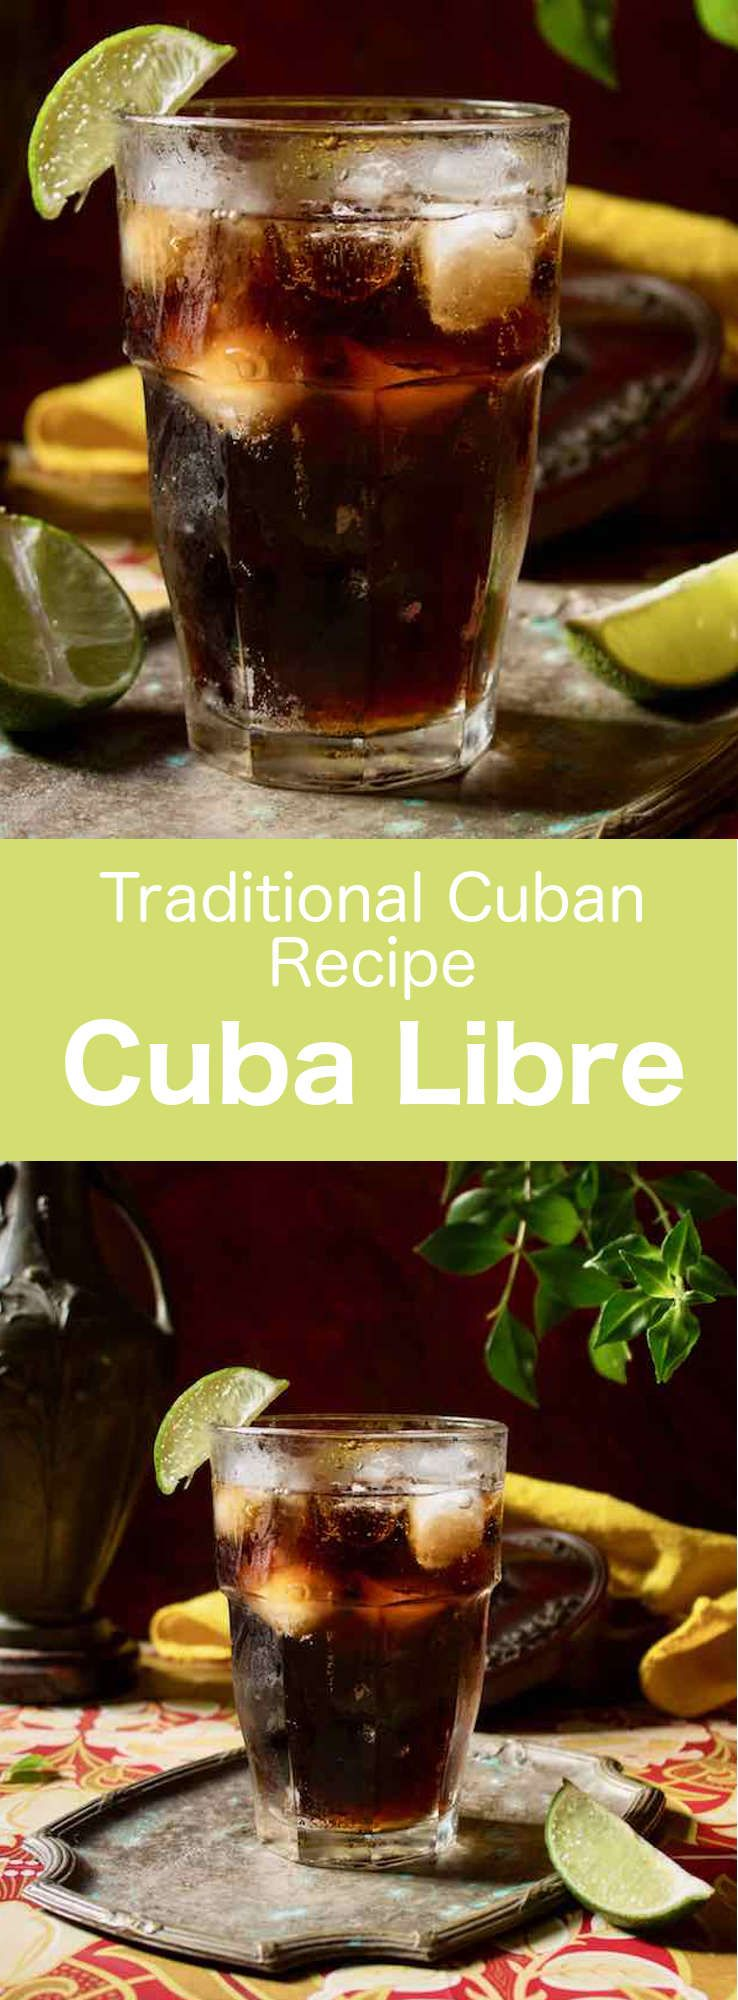 Cuba Libre is an easy-to-make traditional Cuban cocktail that is prepared with Coke, white rum, and lime, and that is served on the rocks. #Cuba #Cocktail #CubanRecipe #CubanDrink #Caribbean #CaribbeanDrink #WorldCuisine #196flavors via @196flavors #cubalibre